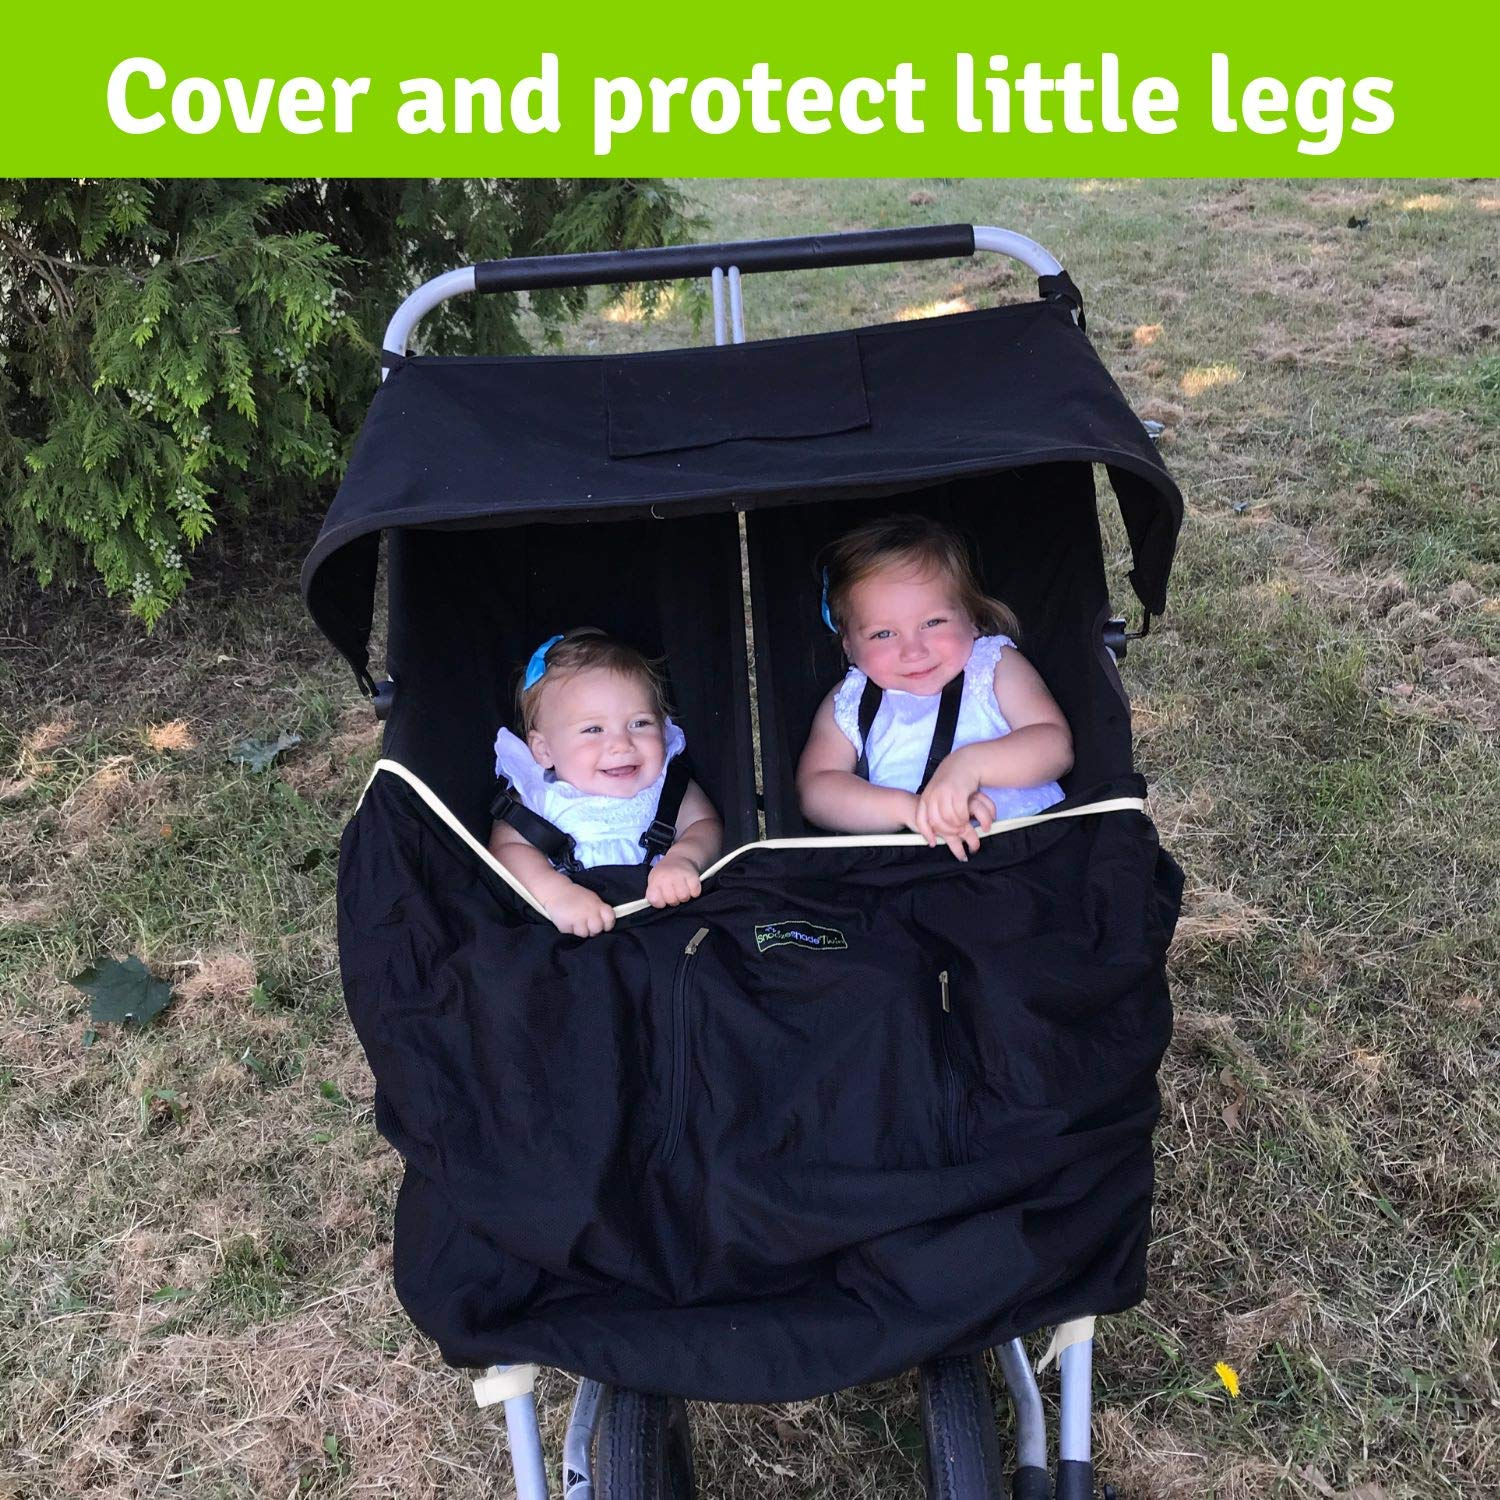 Double Stroller Cover & Sun Shade | Award-Winning Blackout Blind and Baby Sleep Aid | Stops 99% of The Sun's Rays | Lets Your Babies nap Safely Anywhere | Universal Fit | SnoozeShade Twin by SnoozeShade (Image #3)